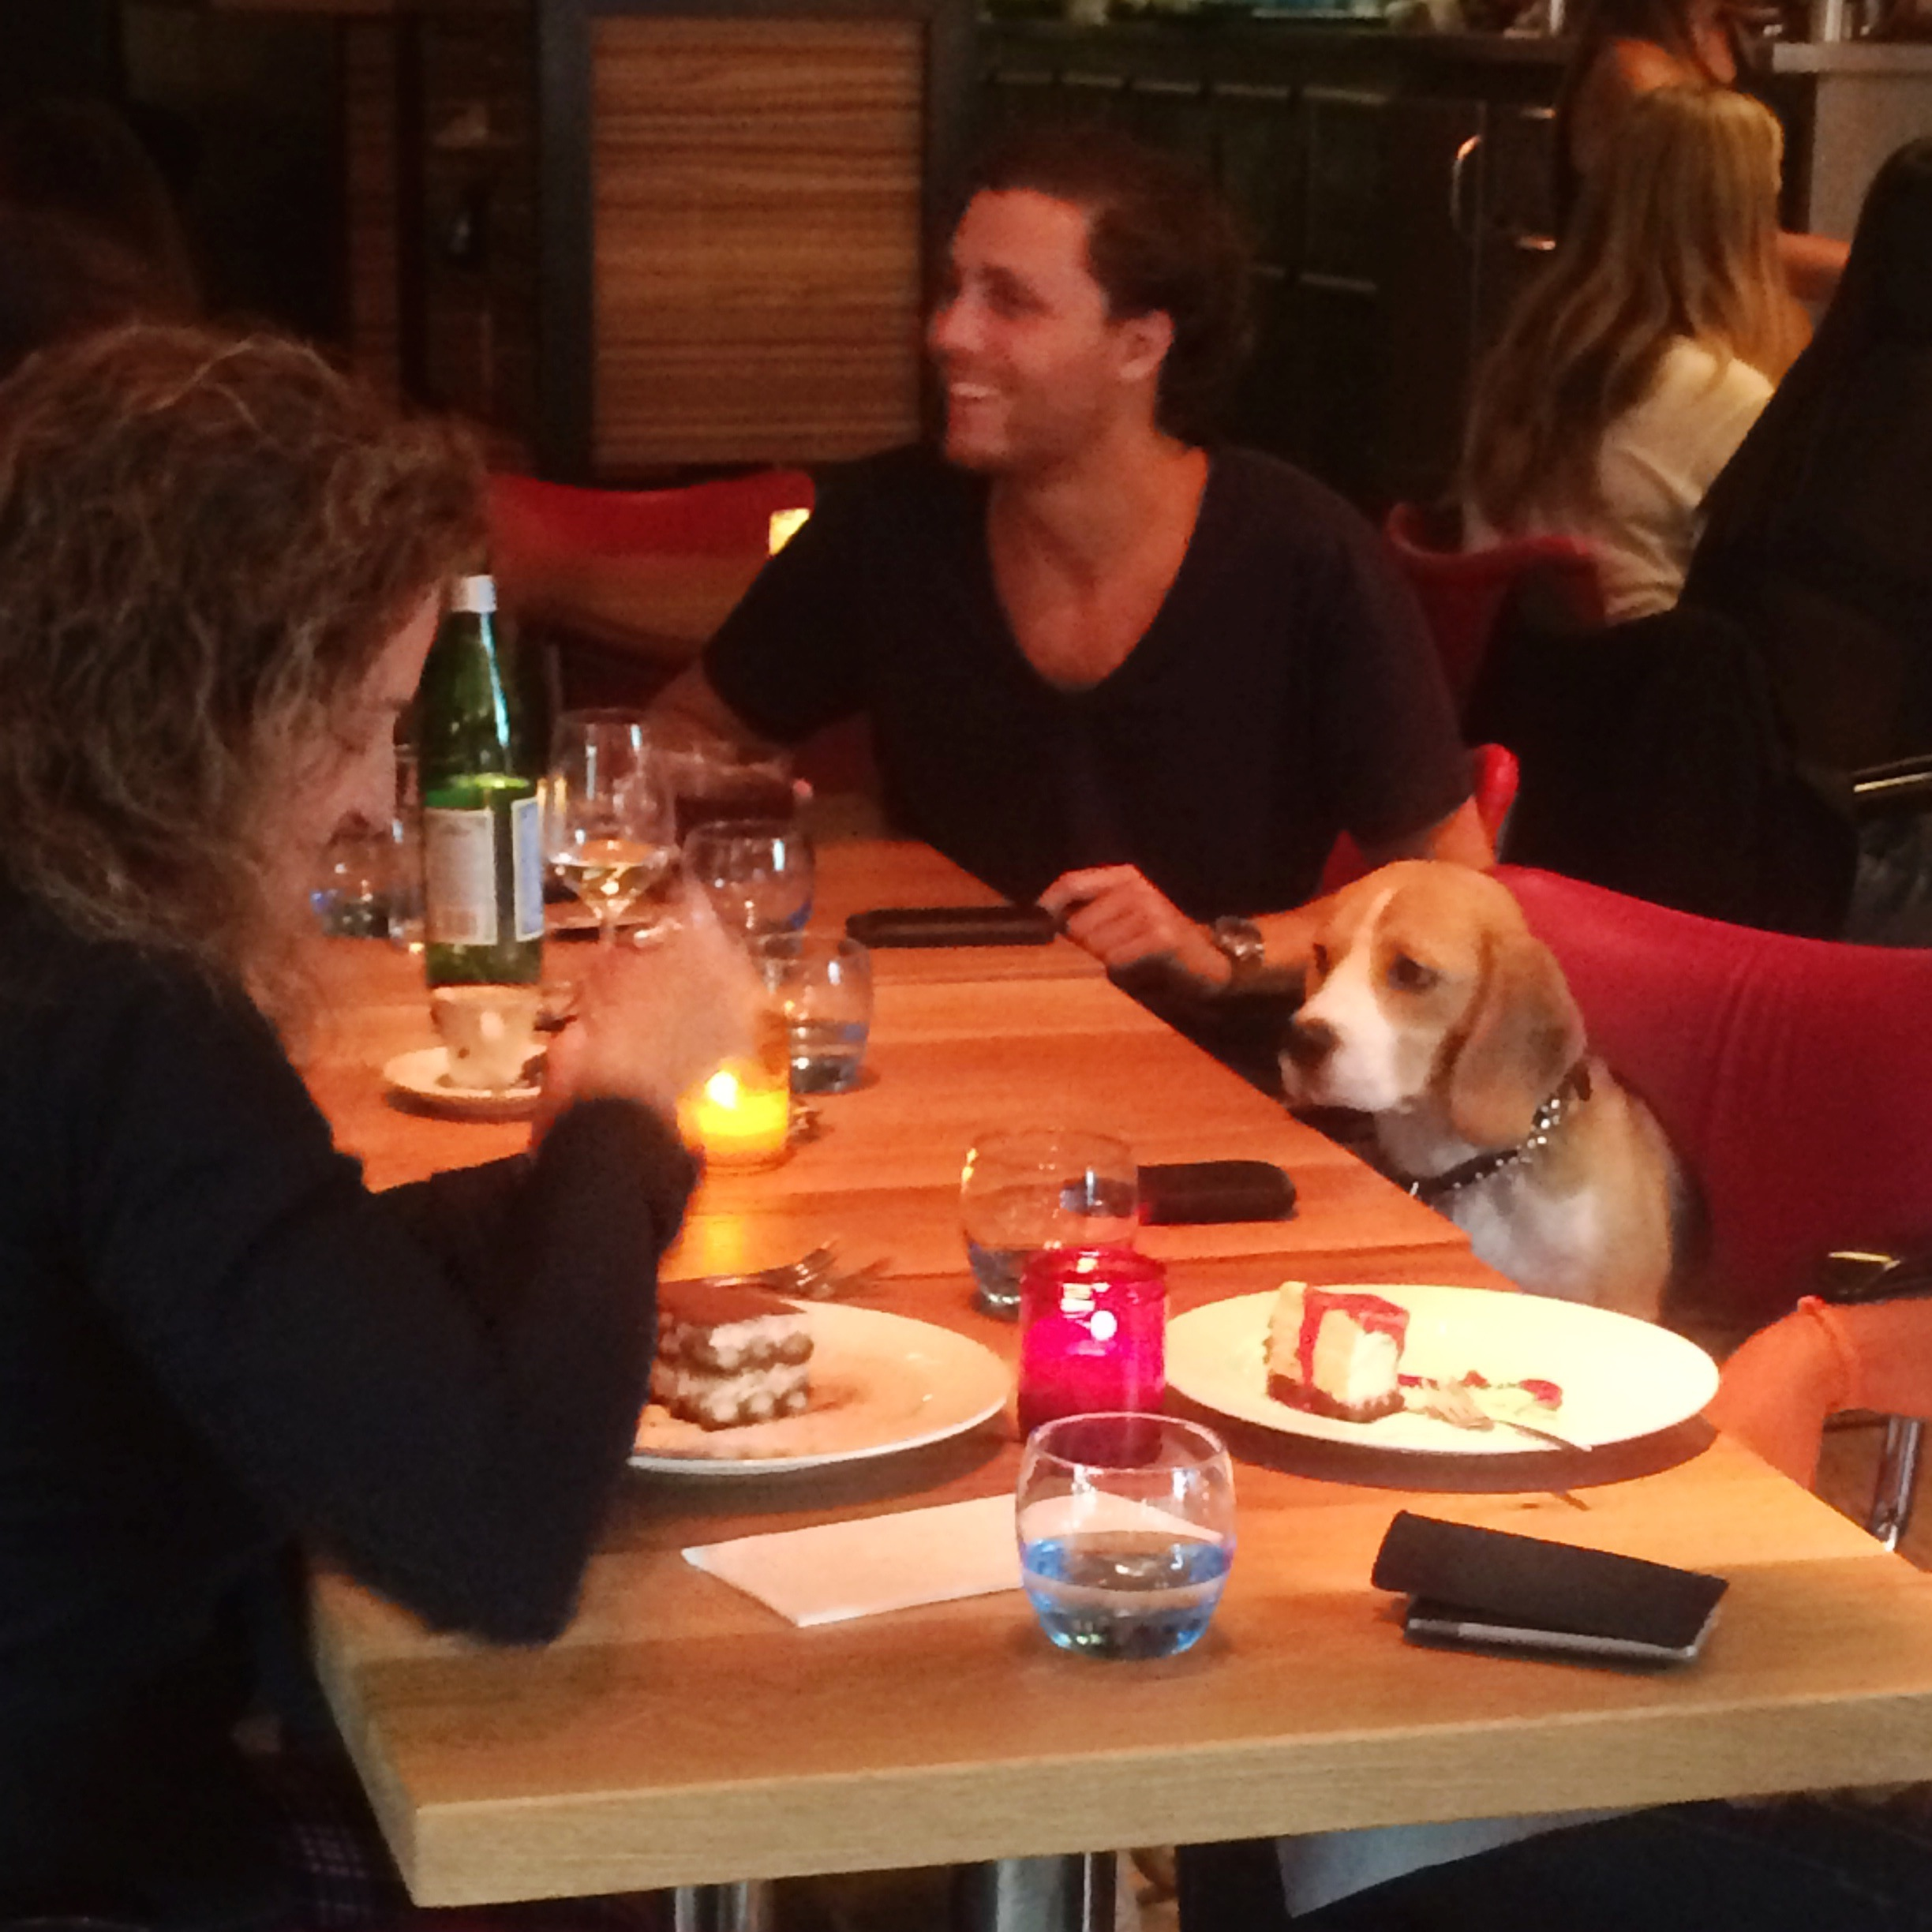 A Dog at the Restaurant